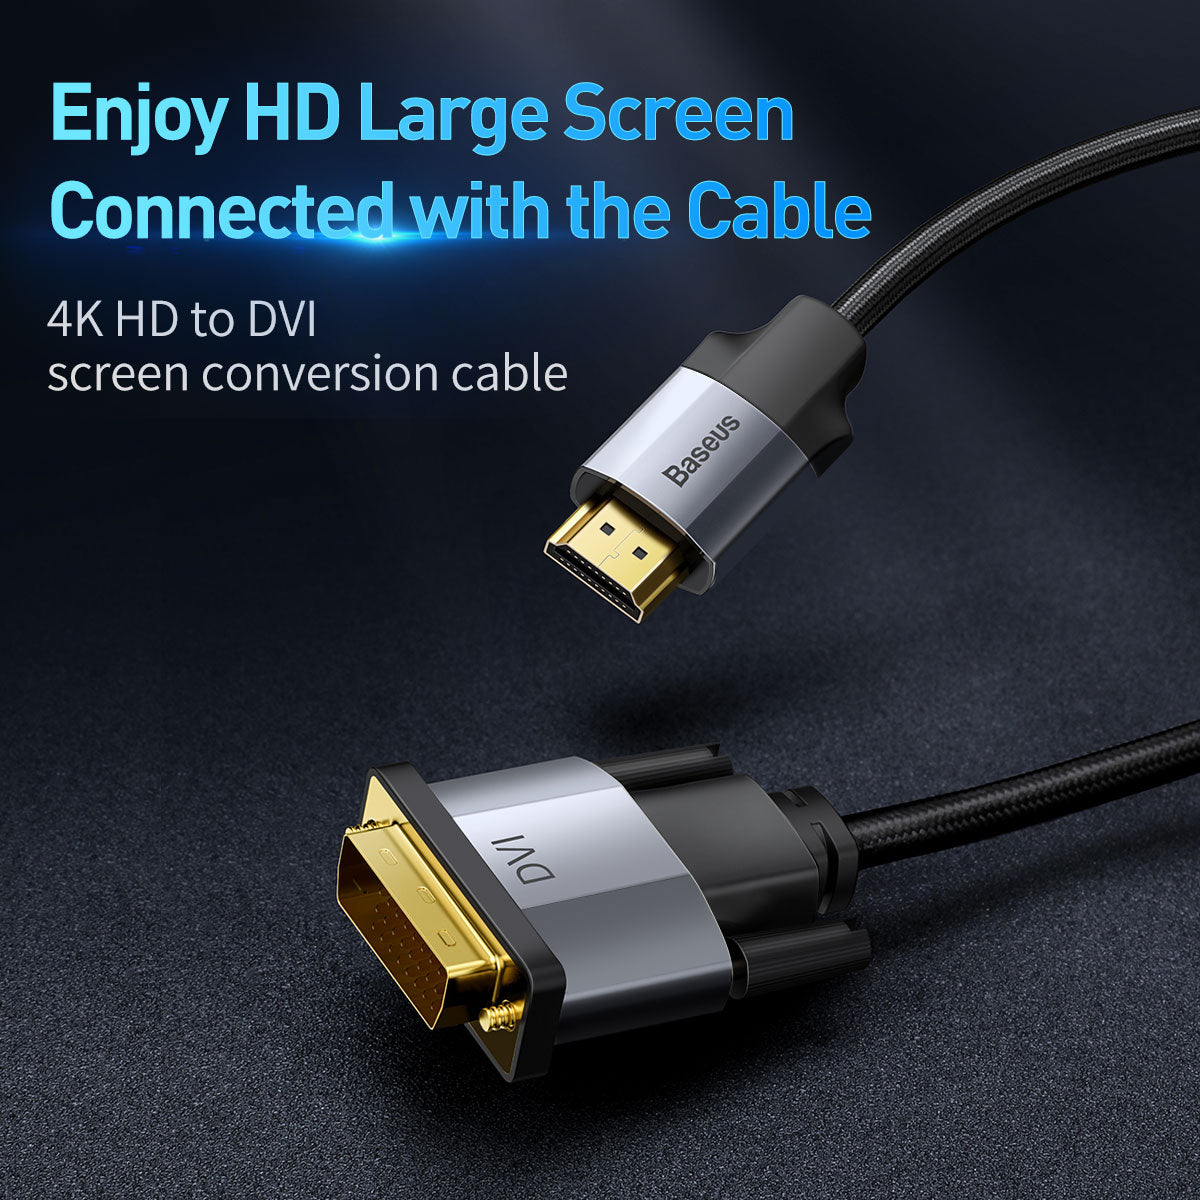 Baseus_4K_HDMI_to_DVI_Bidirectional_4K_SA905M6W8ZJL.jpg